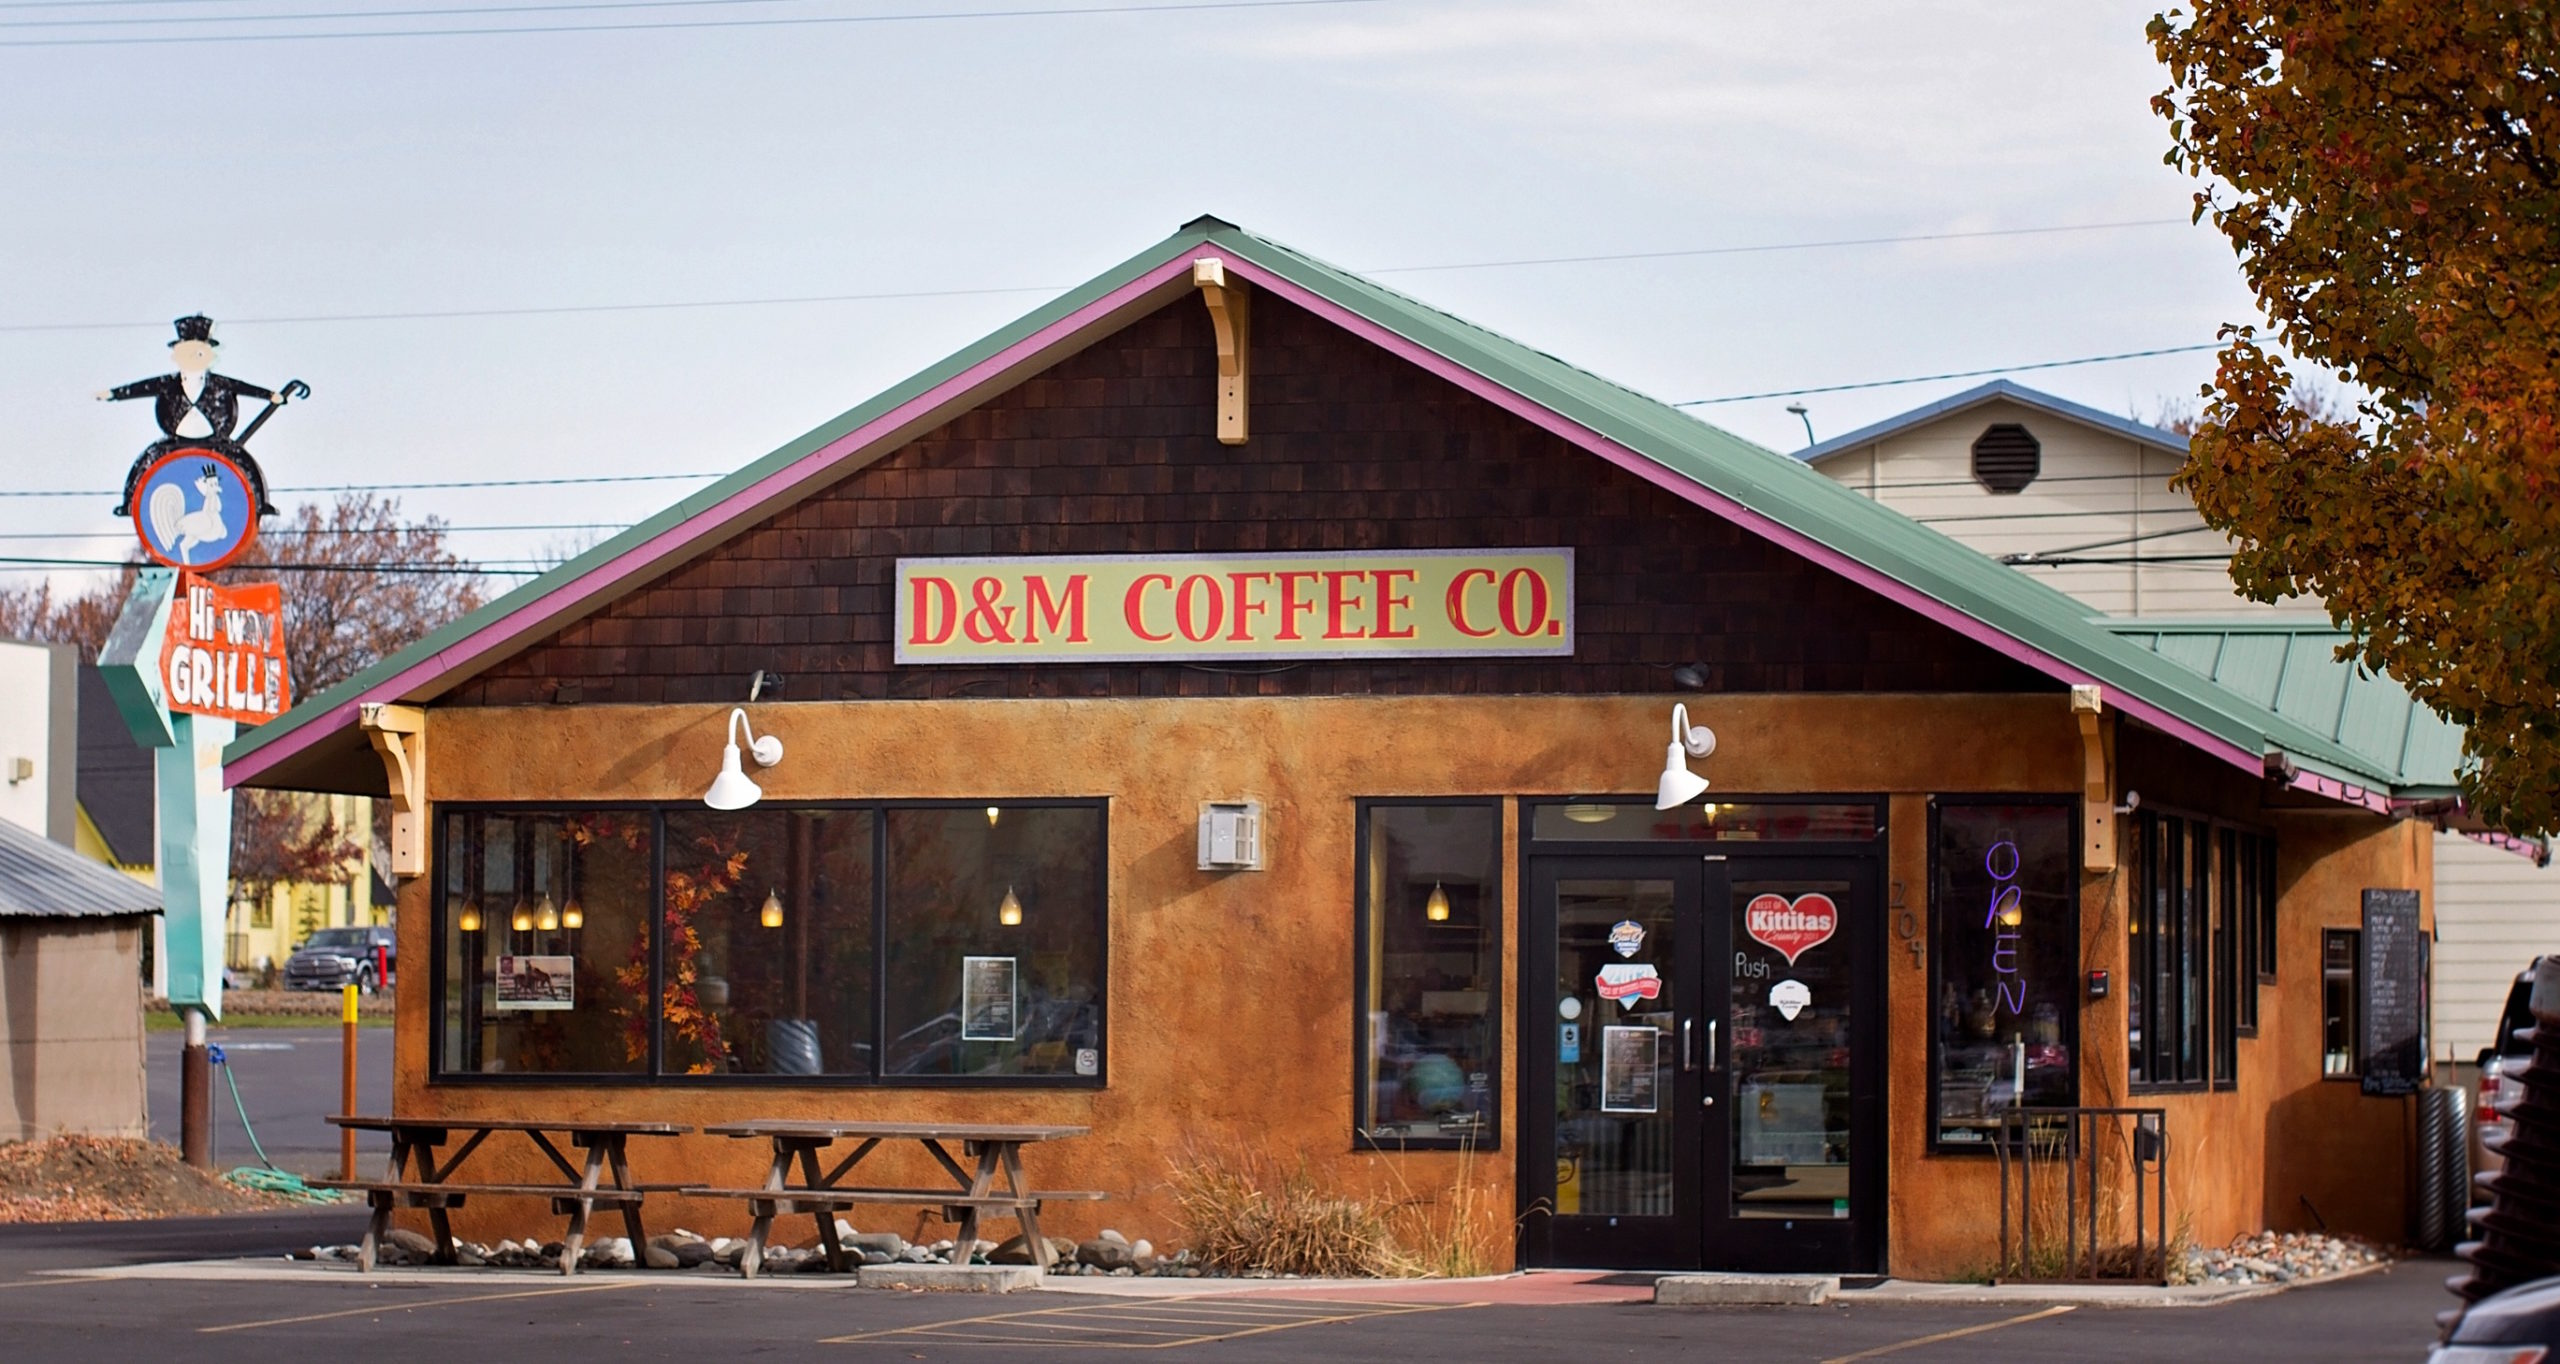 D&M Coffee